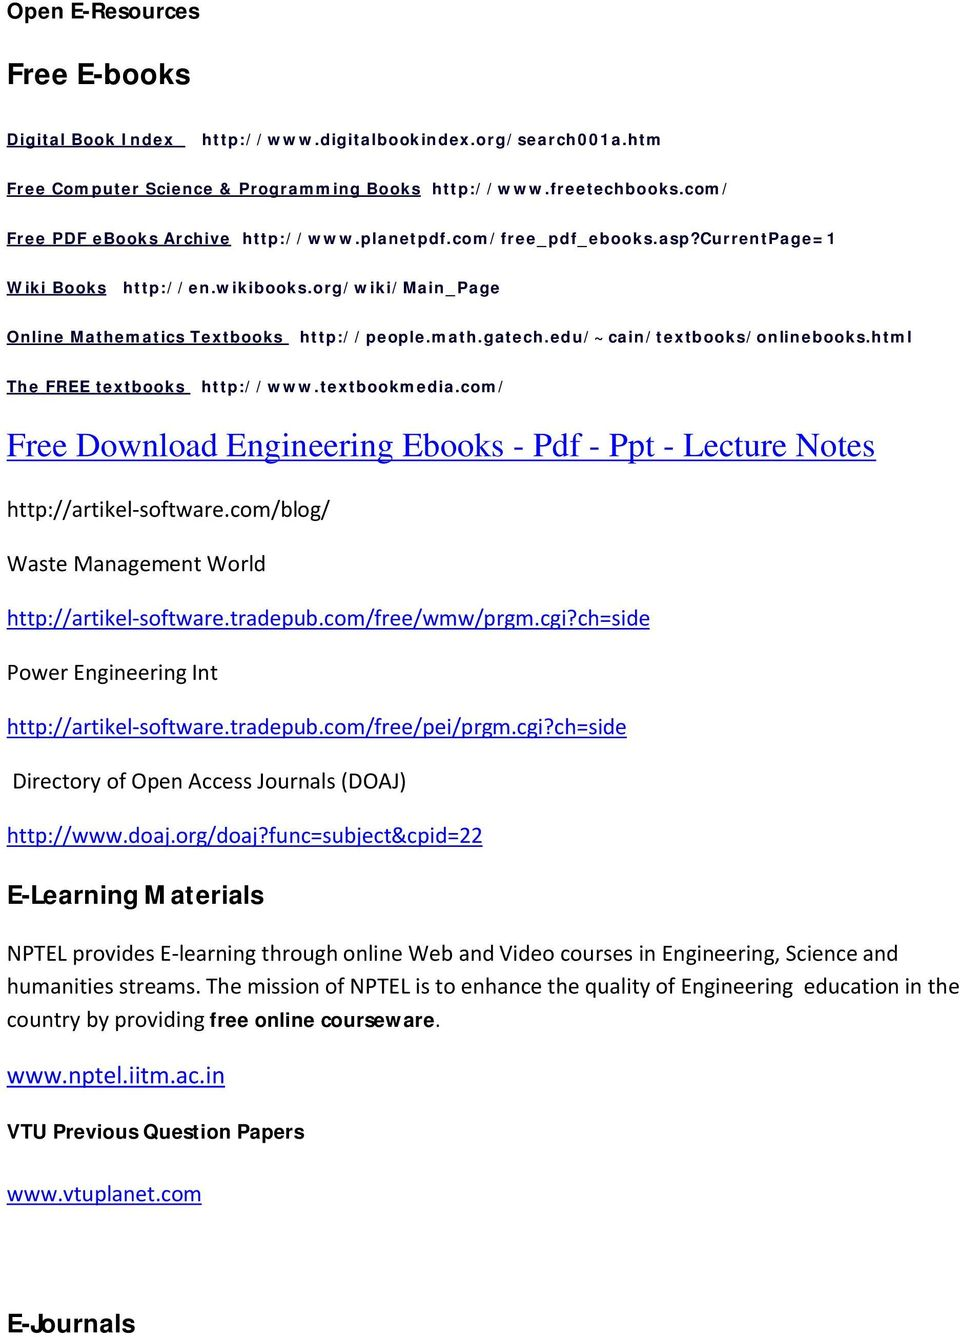 Free Download Engineering Ebooks - Pdf - Ppt - Lecture Notes